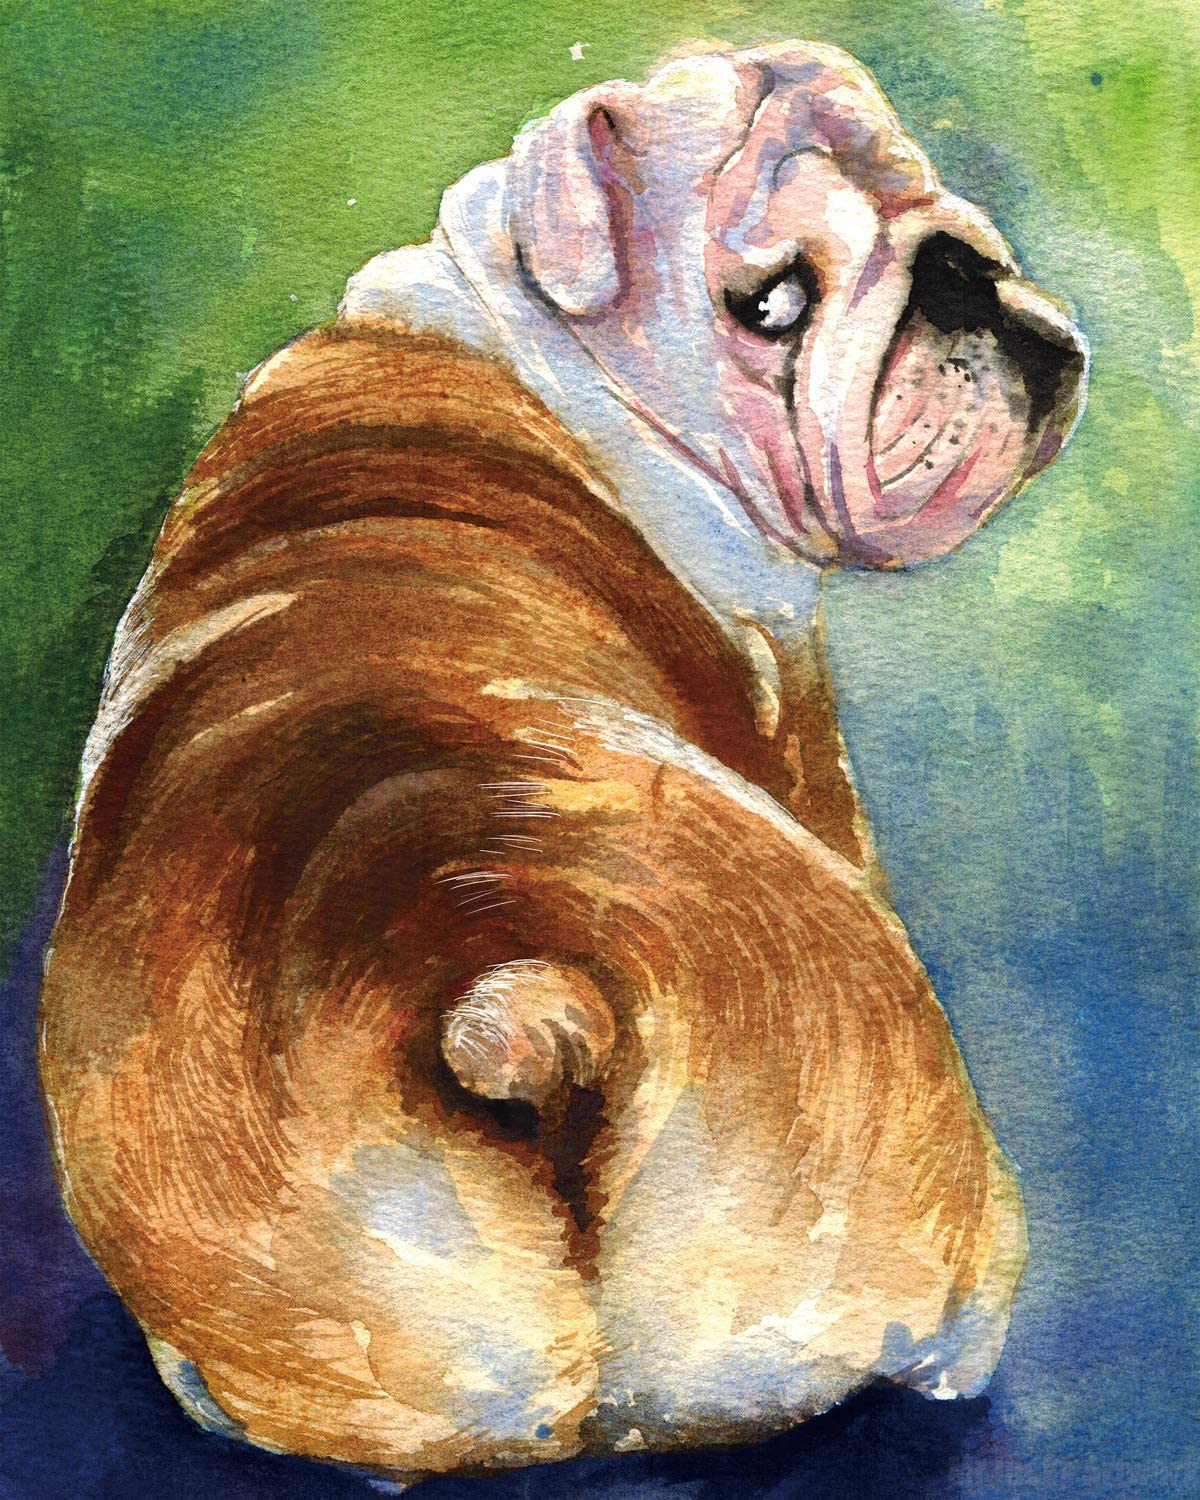 "Mr.lucky Artwork Bulldog | English Bulldog Art Print | Bulldog Gifts | Bulldog Meme | 8x10"" and 11x14"" Sizes (11''x14'')"